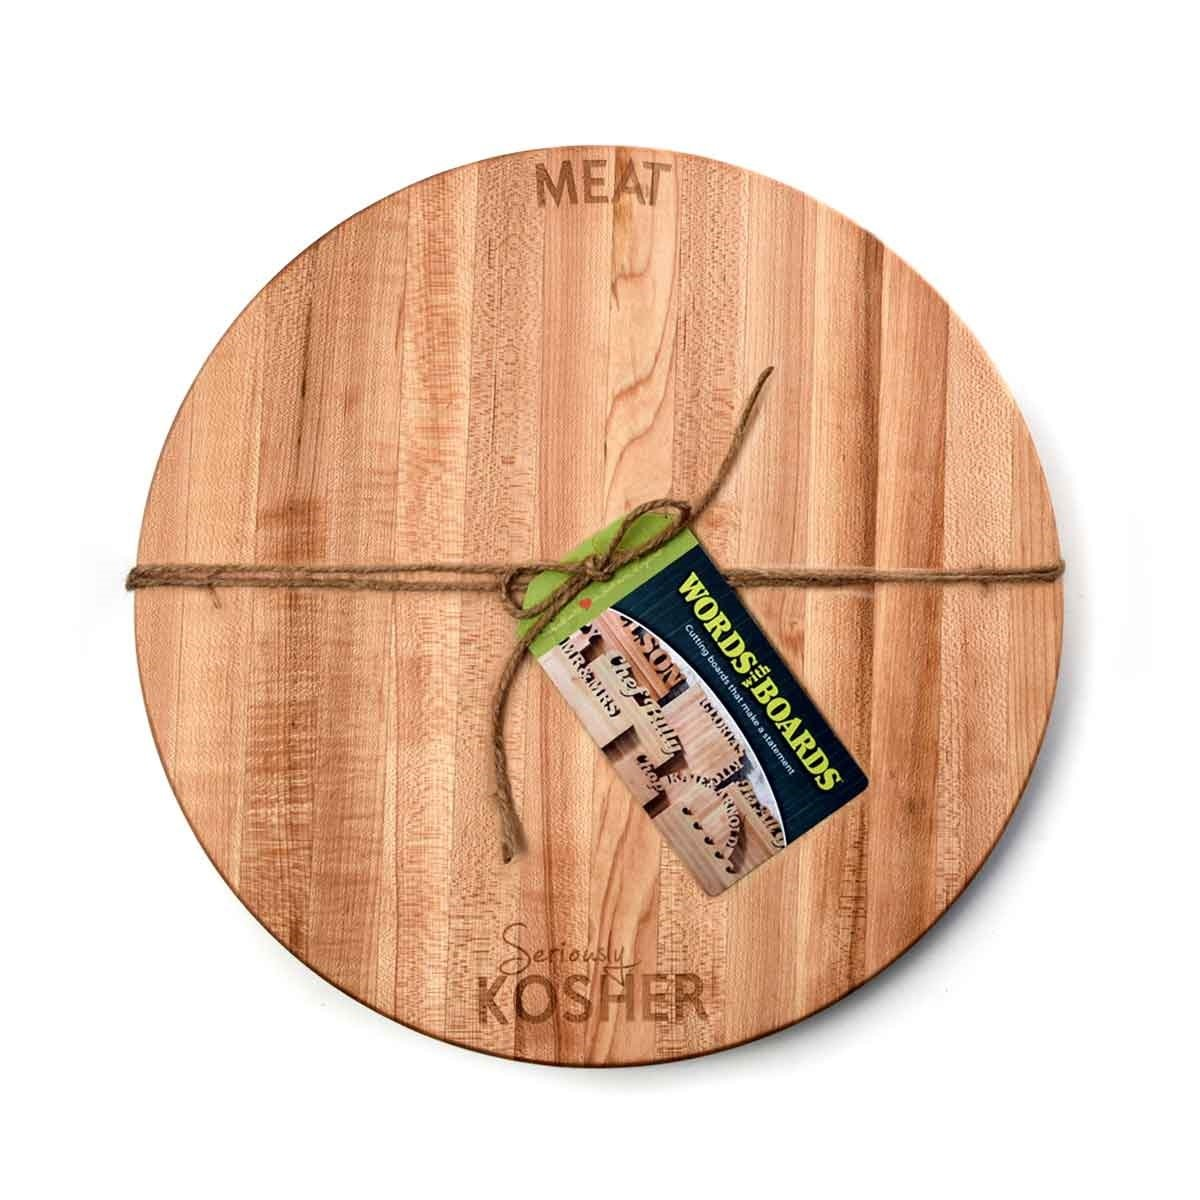 Seriously Kosher ~ Round Cutting Board ~ Meat